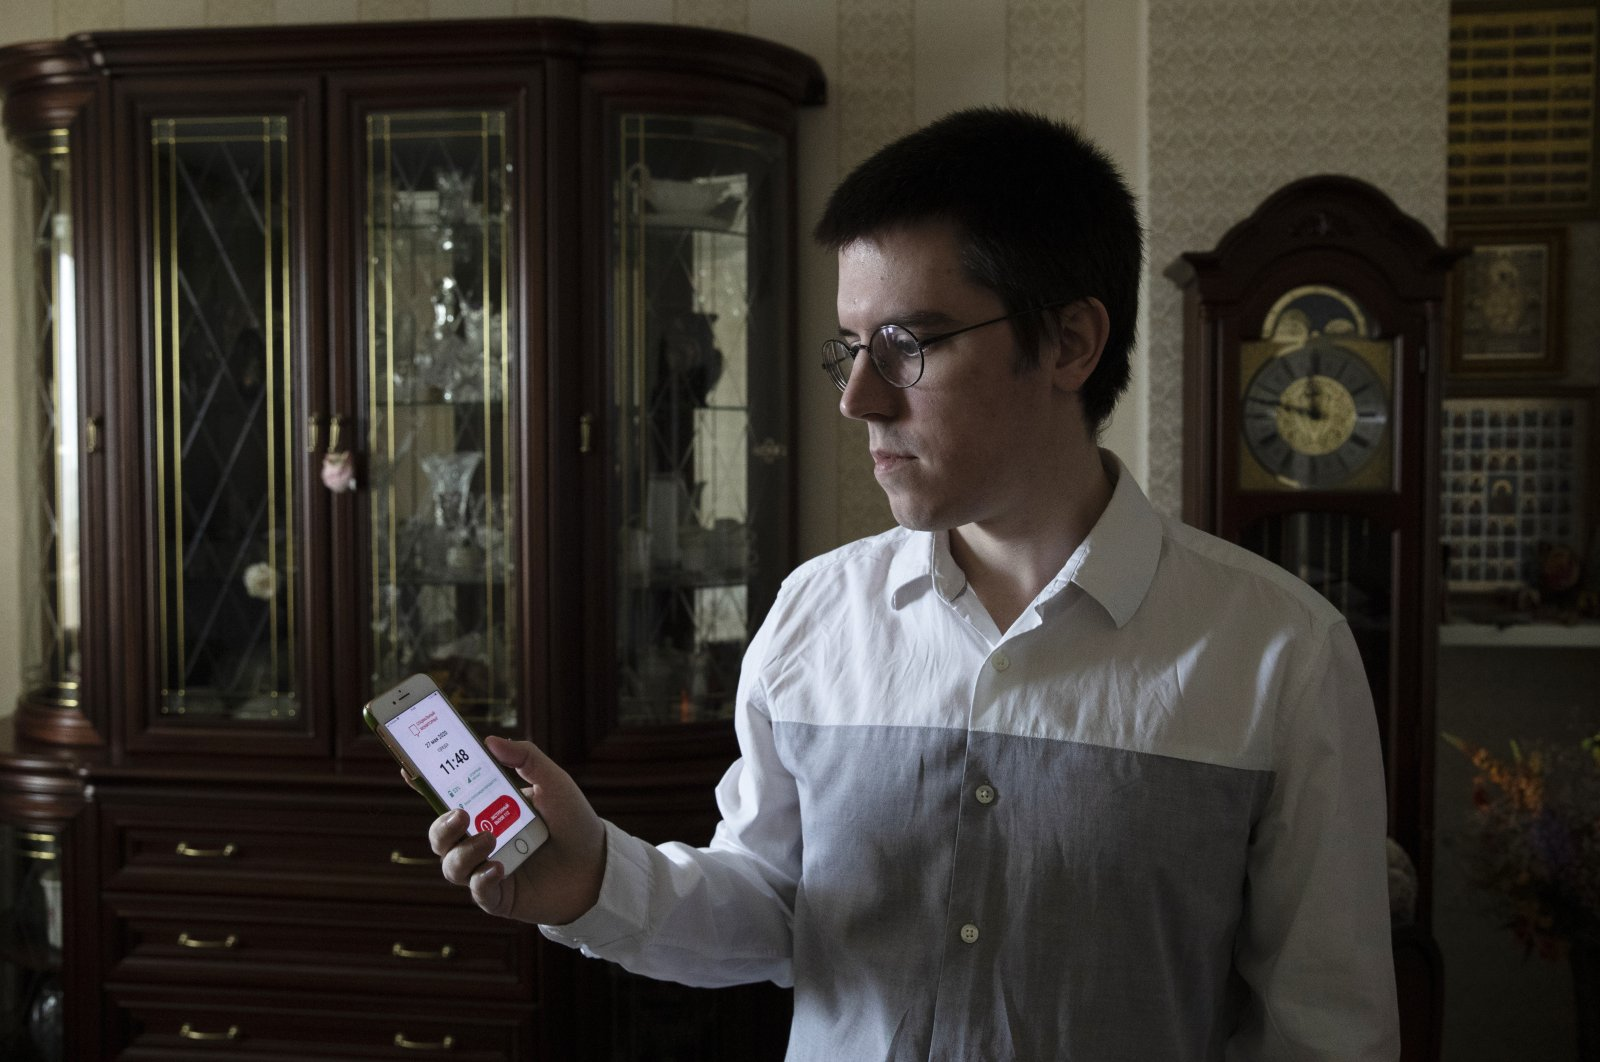 Vladimir Perevalov shows a Social Monitoring app installed on his phone in his apartment in Shcherbinka, outside Moscow, Russia, May 27, 2020. (AP Photo)